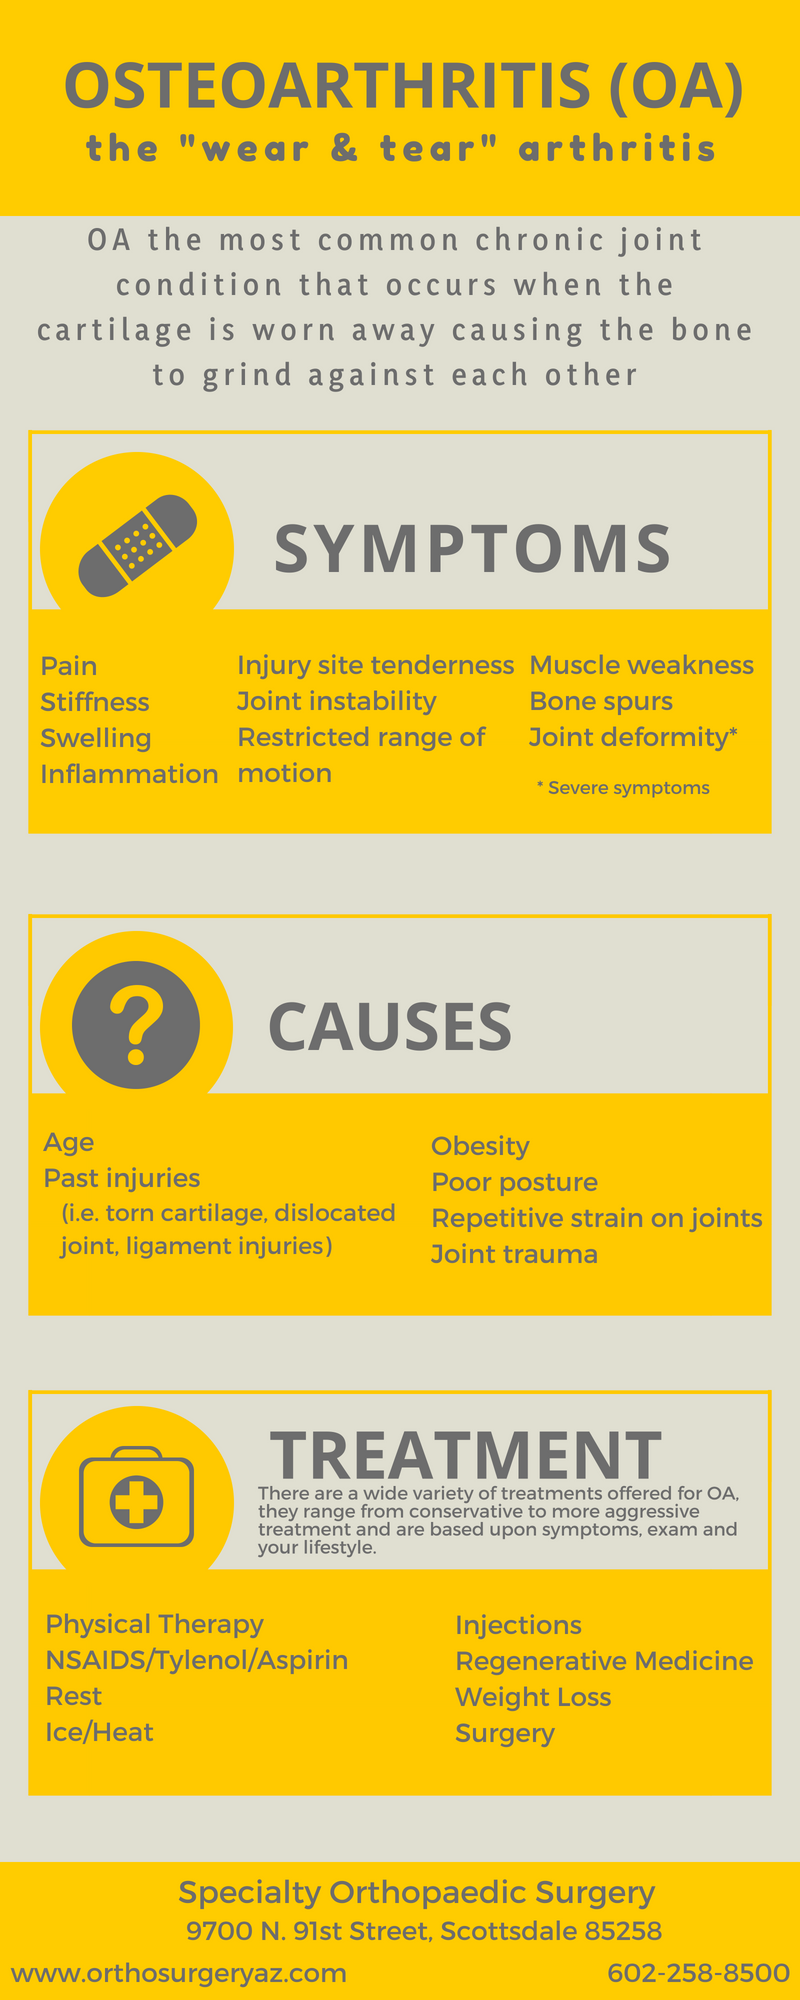 Symptoms, causes, and treatment of Osteoarthritis